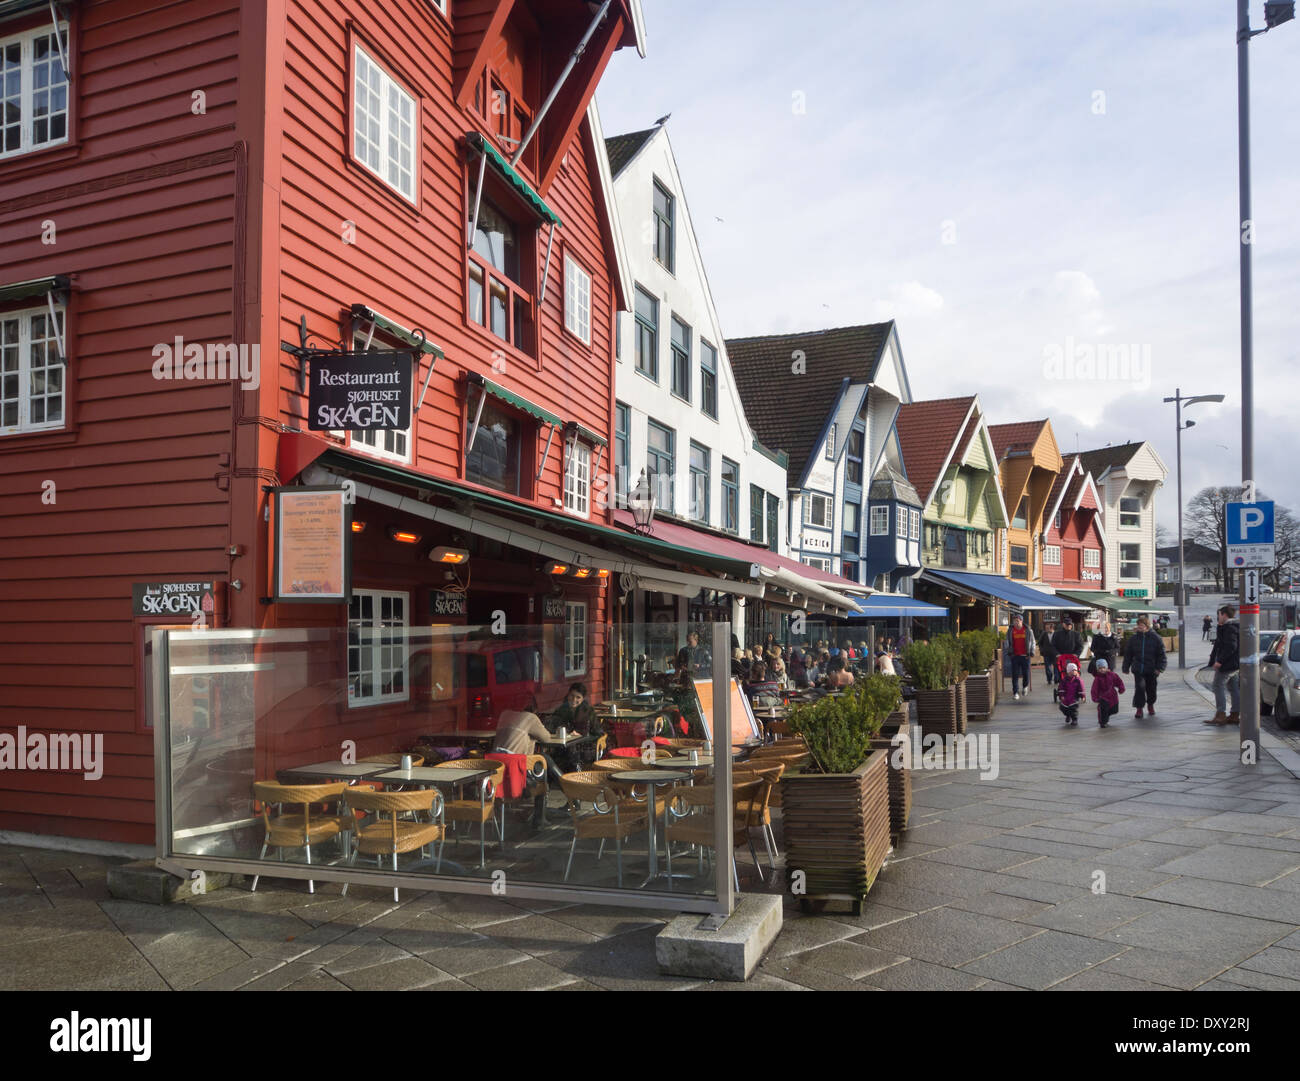 Outdoors restaurants in old warehouses, cafés and bars attract visitors whenever the sun puts in an appearance, Stavanger Norway - Stock Image